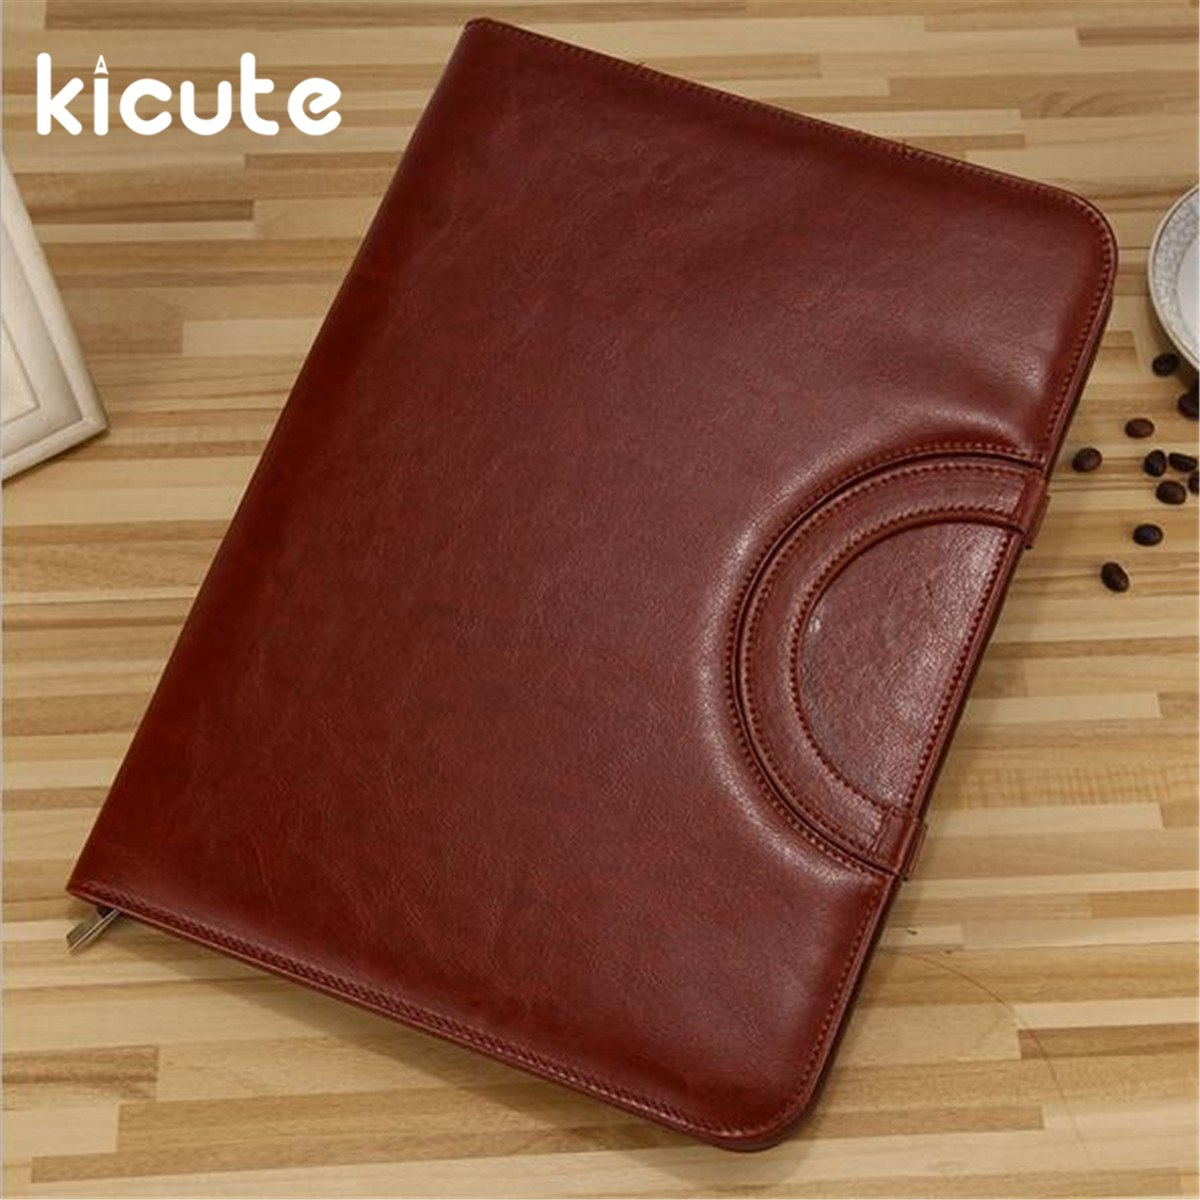 Kicute 1pcs Black/Brown PU Leather Zipped Ring Binder